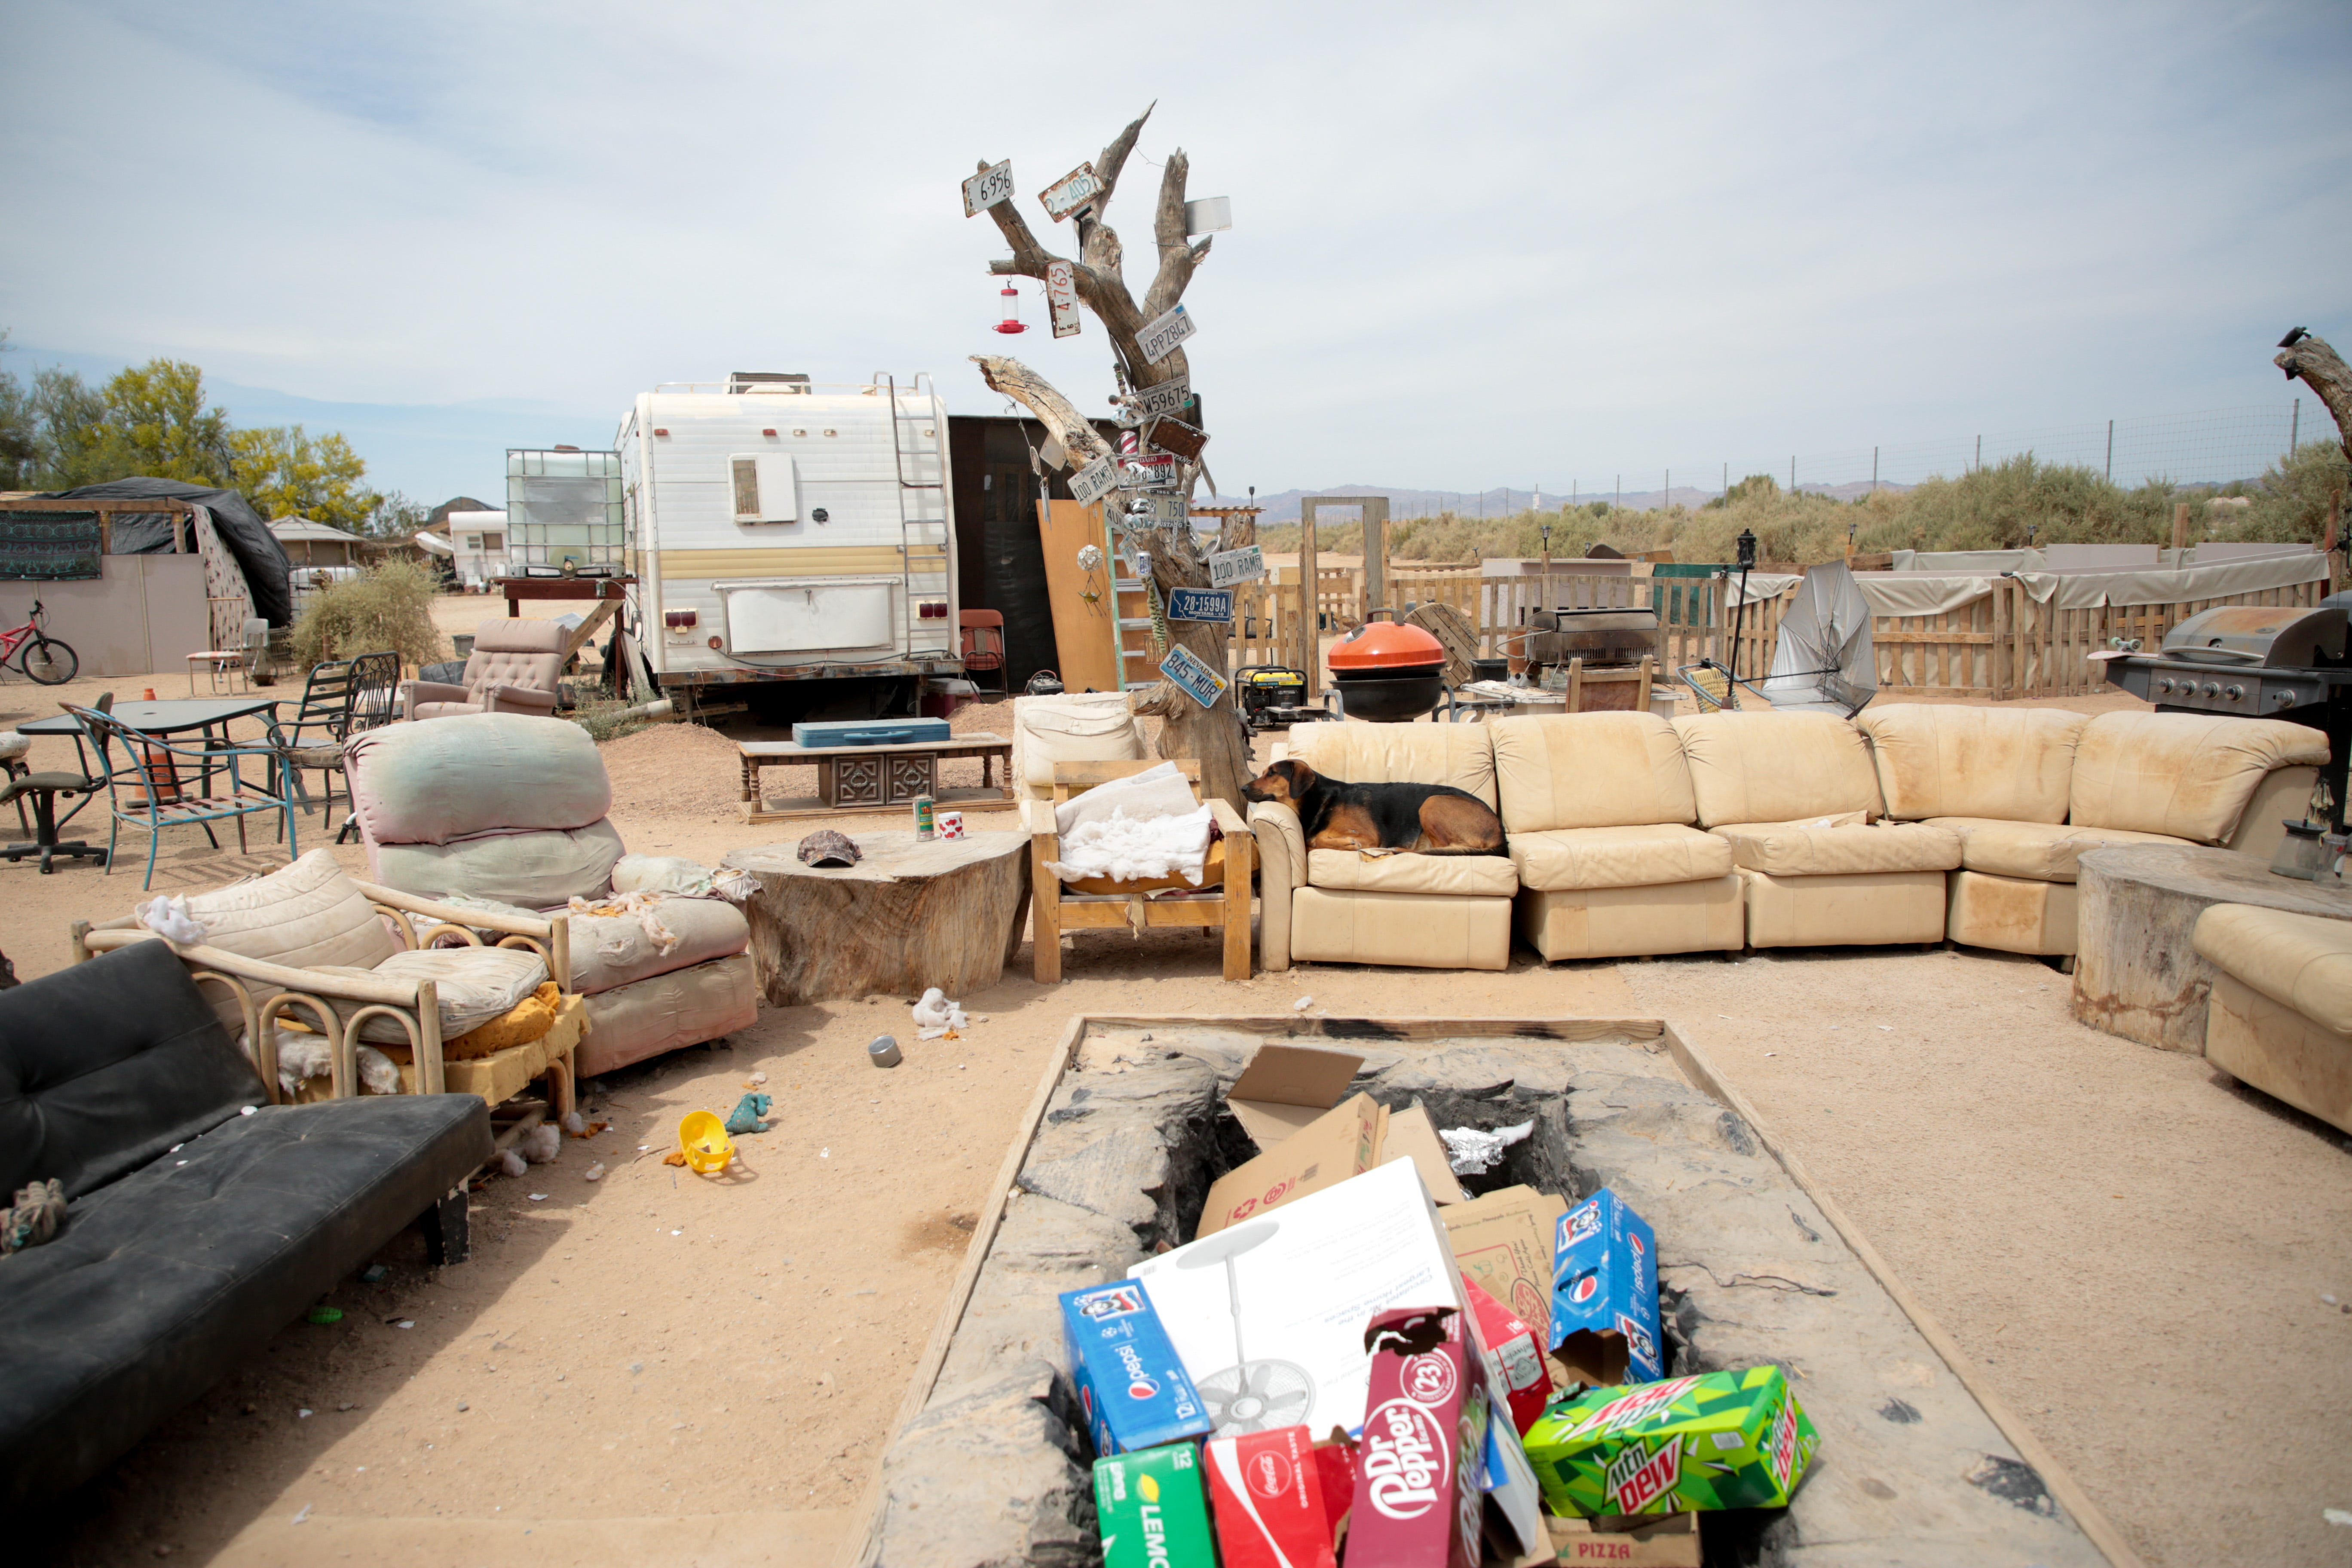 A dog sits on a couch outside the California Ponderosa camp in Slab City, Calif., on Monday, April 5, 2021.